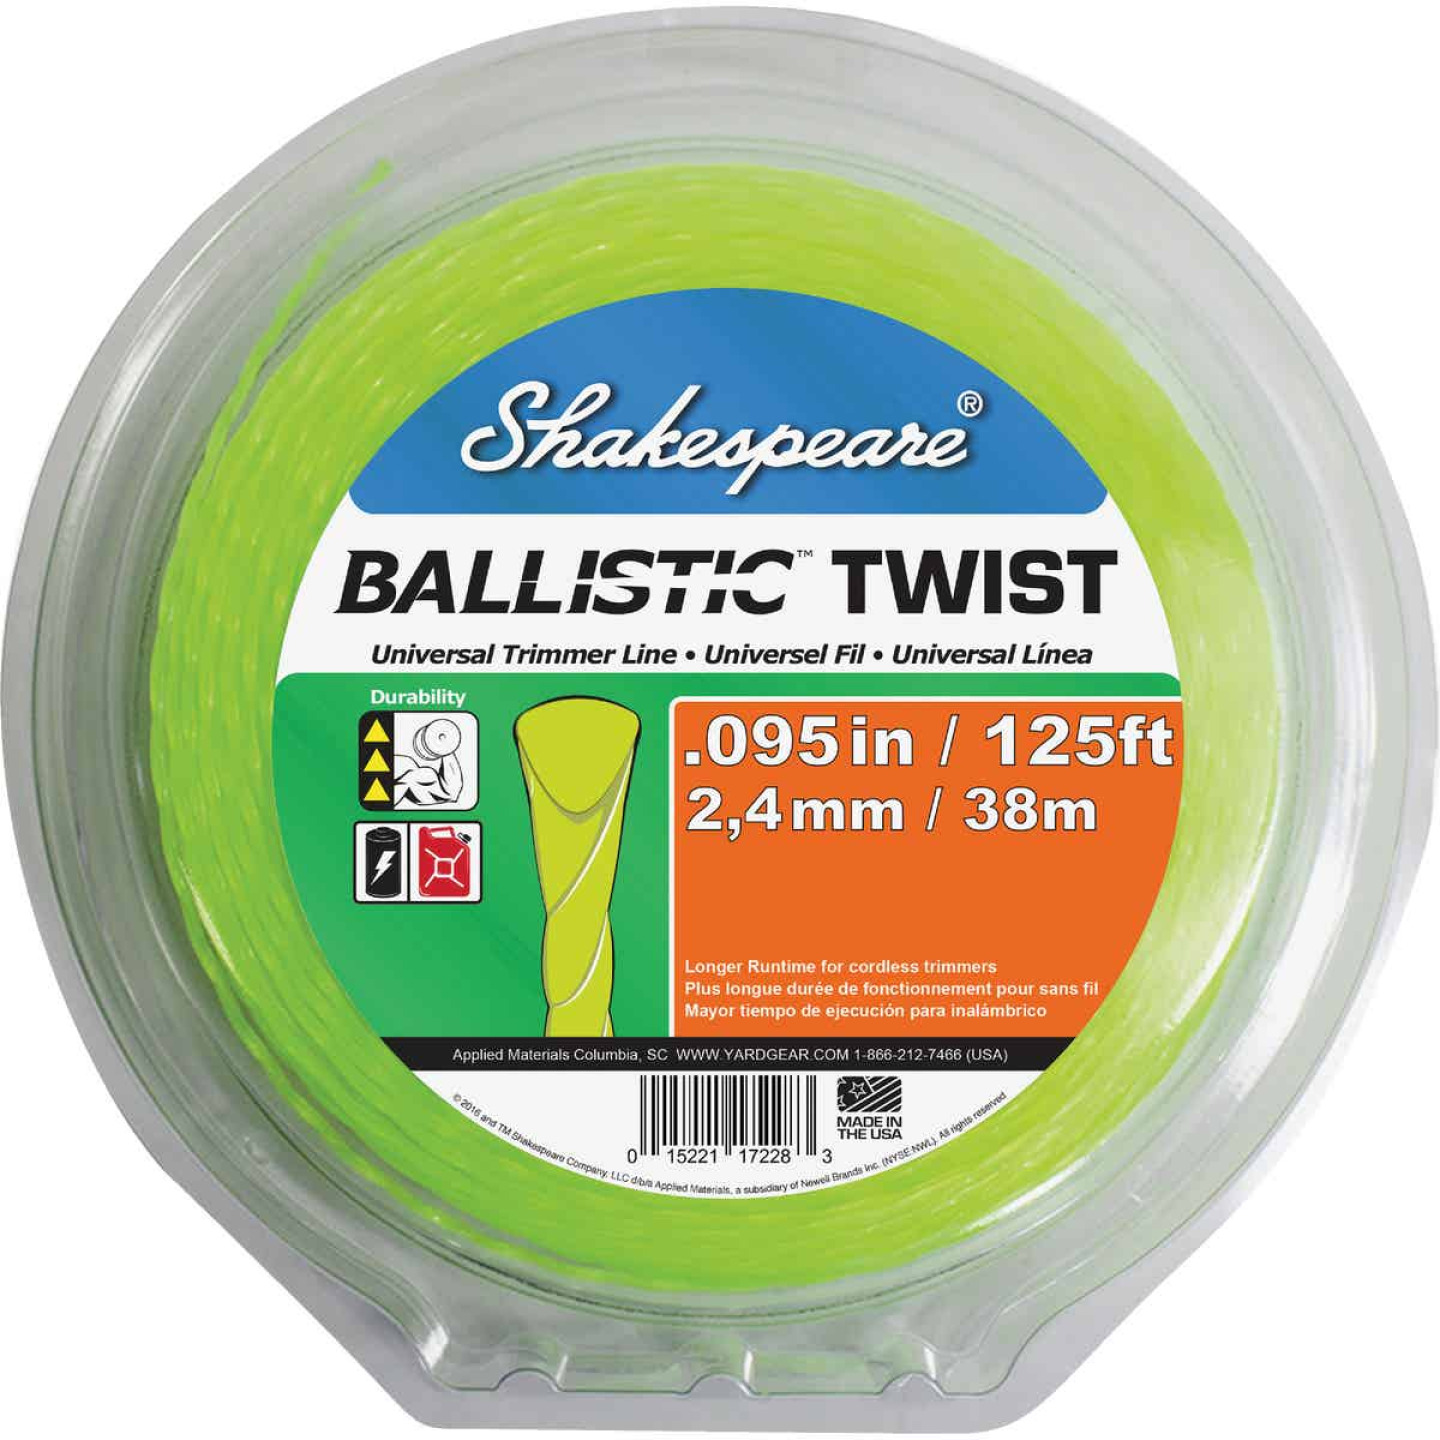 Shakespeare 0.095 In. x 125 Ft. Ballistic Twist Universal Trimmer Line Image 1